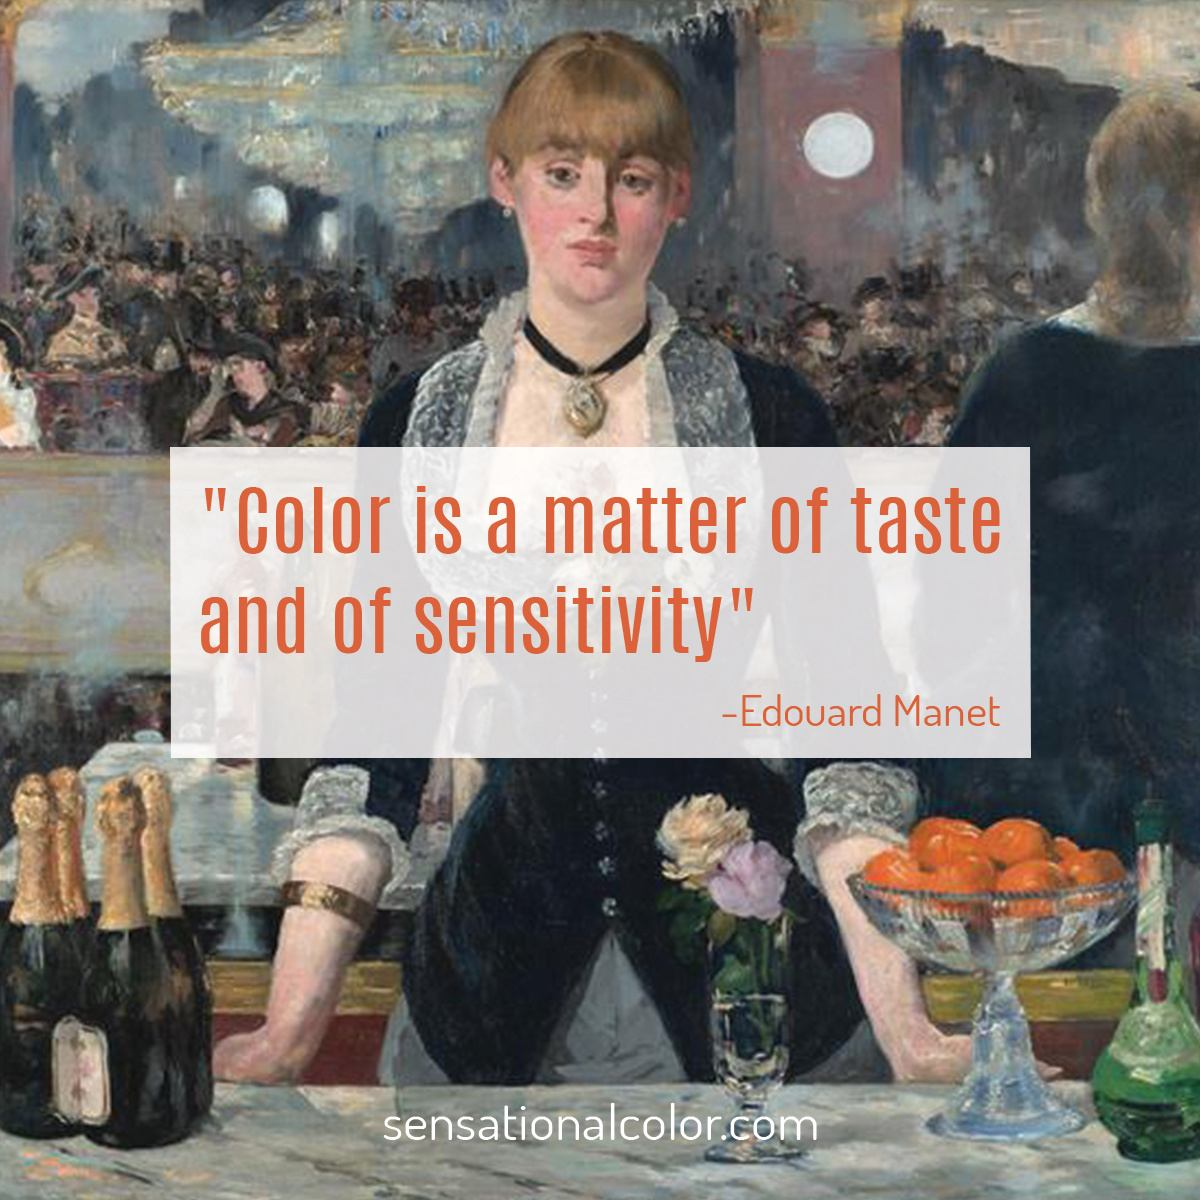 """Color is a matter of taste and of sensitivity."" - Edouard Manet"